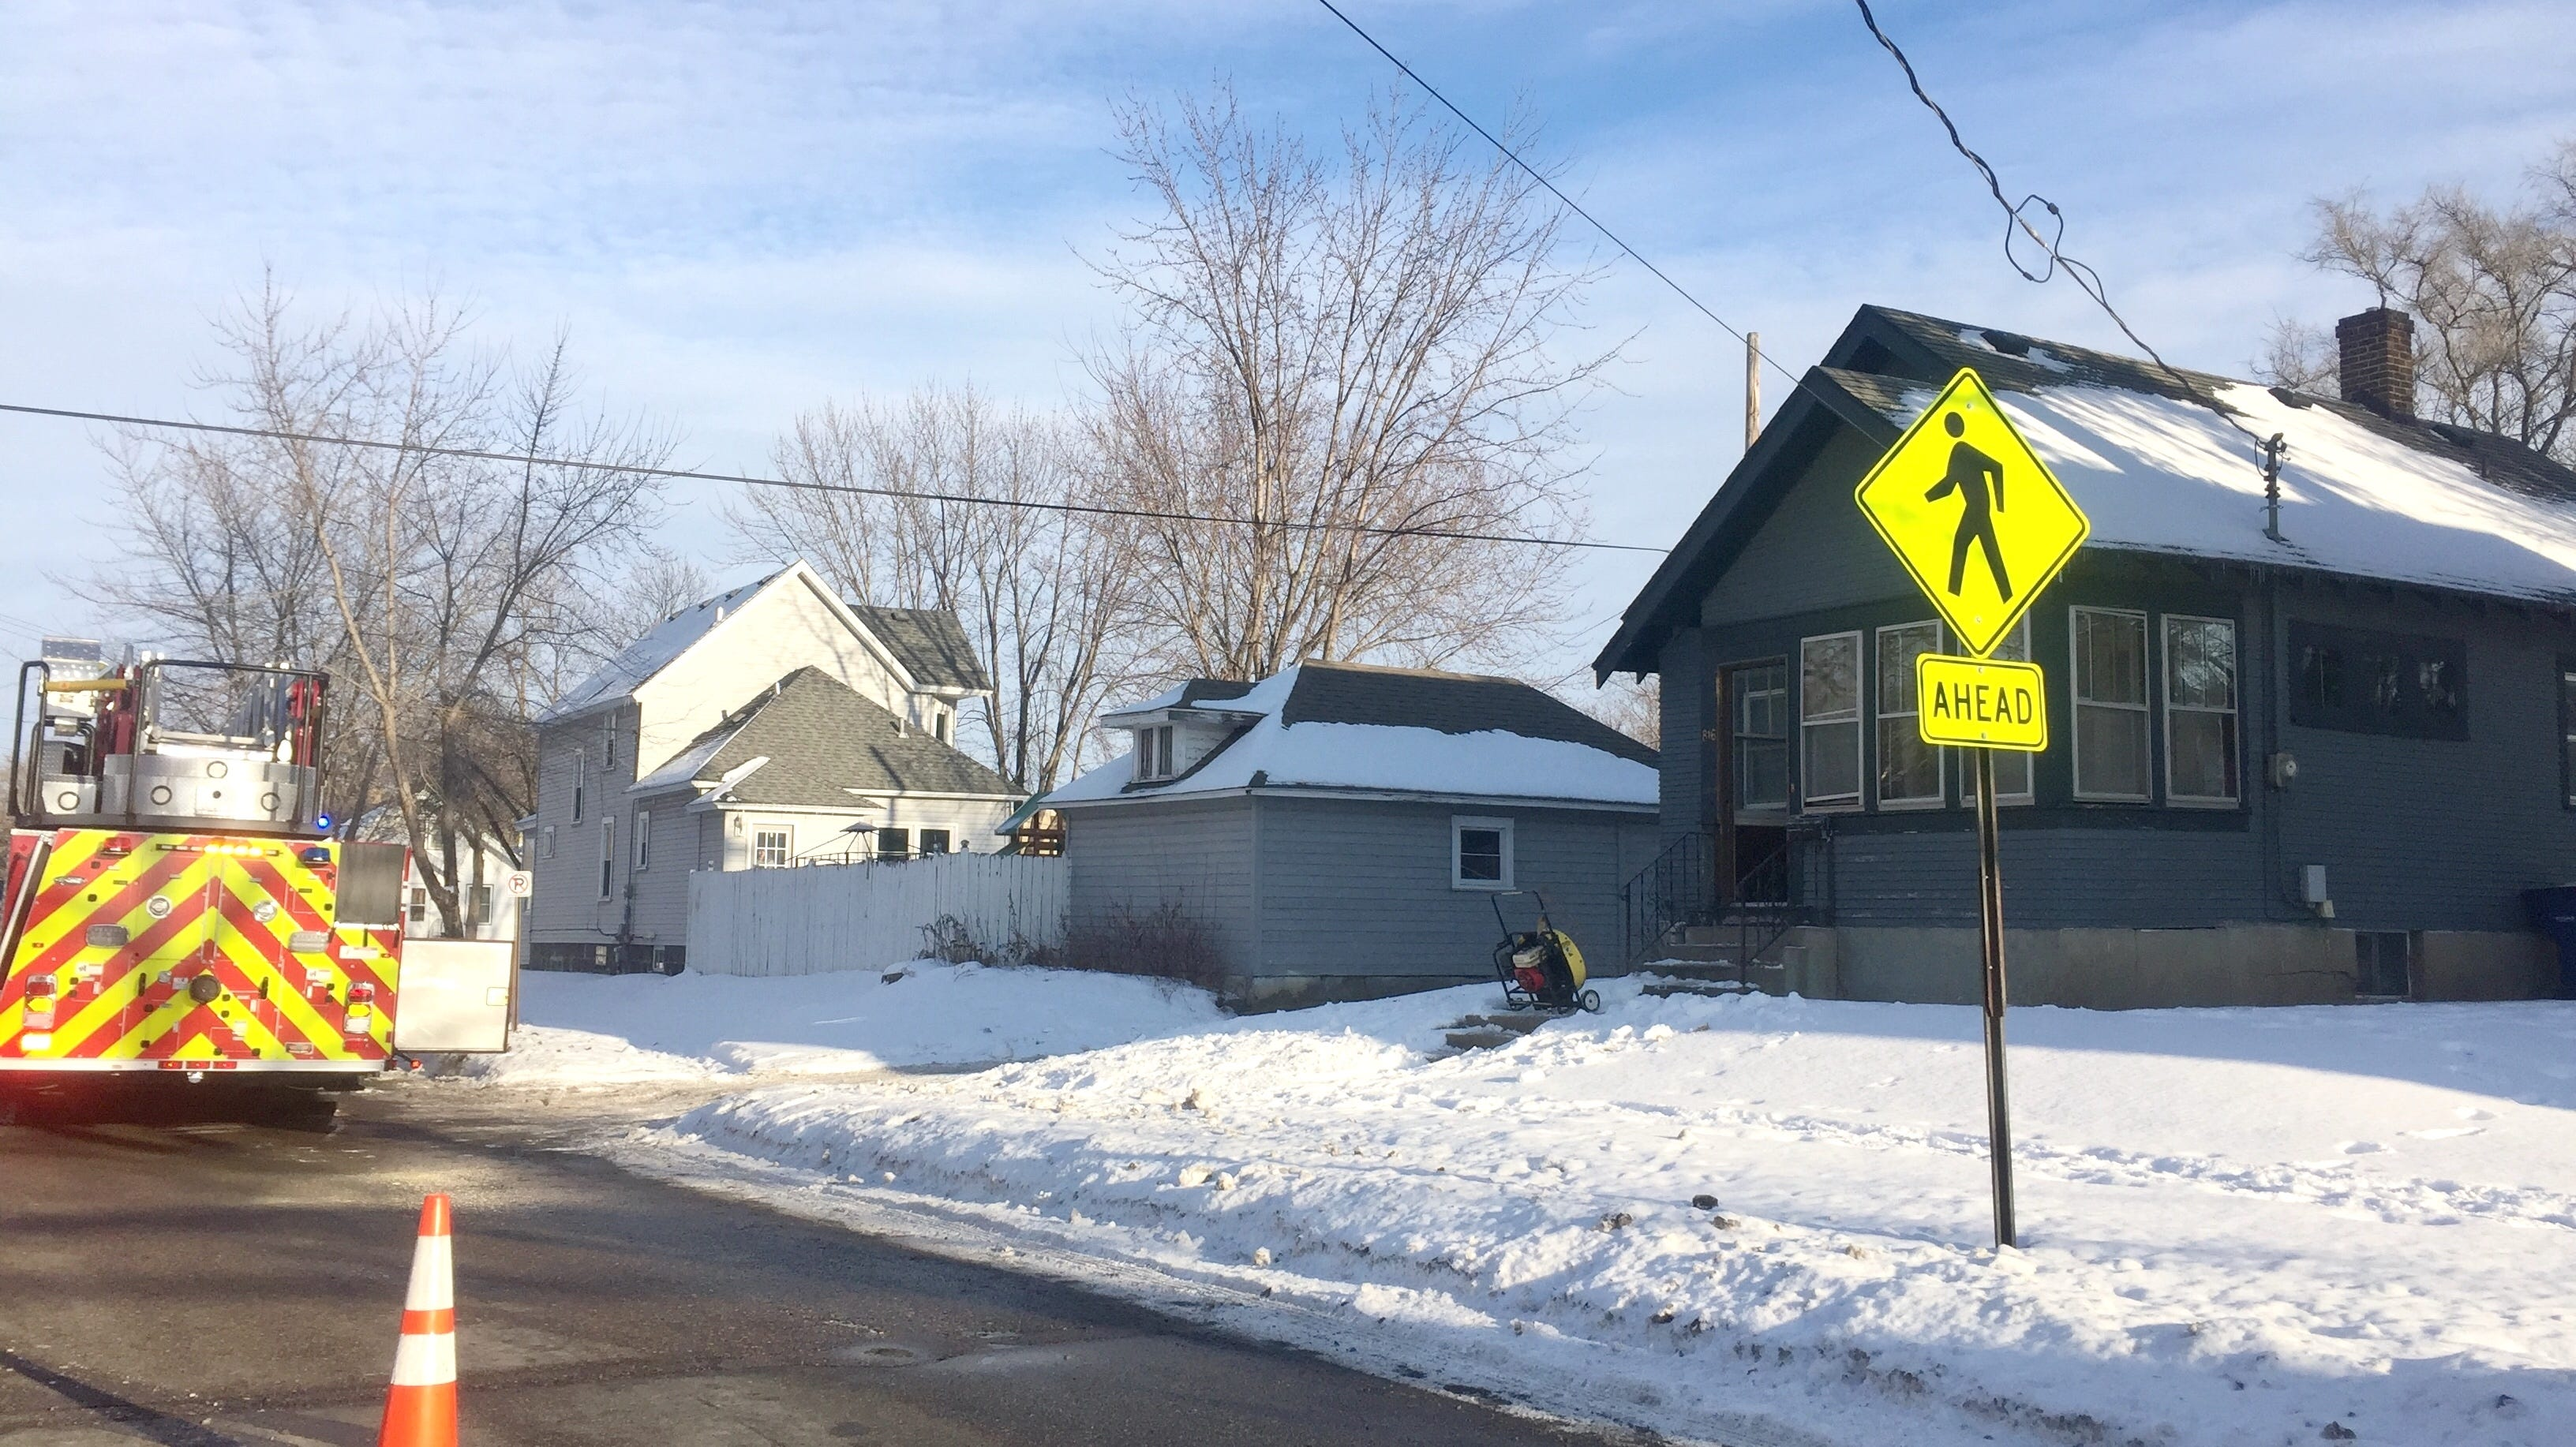 St. Cloud Fire Department responds to a fire at about 3:30 p.m. Wednesday, Jan. 23, at 816 Veterans Drive.